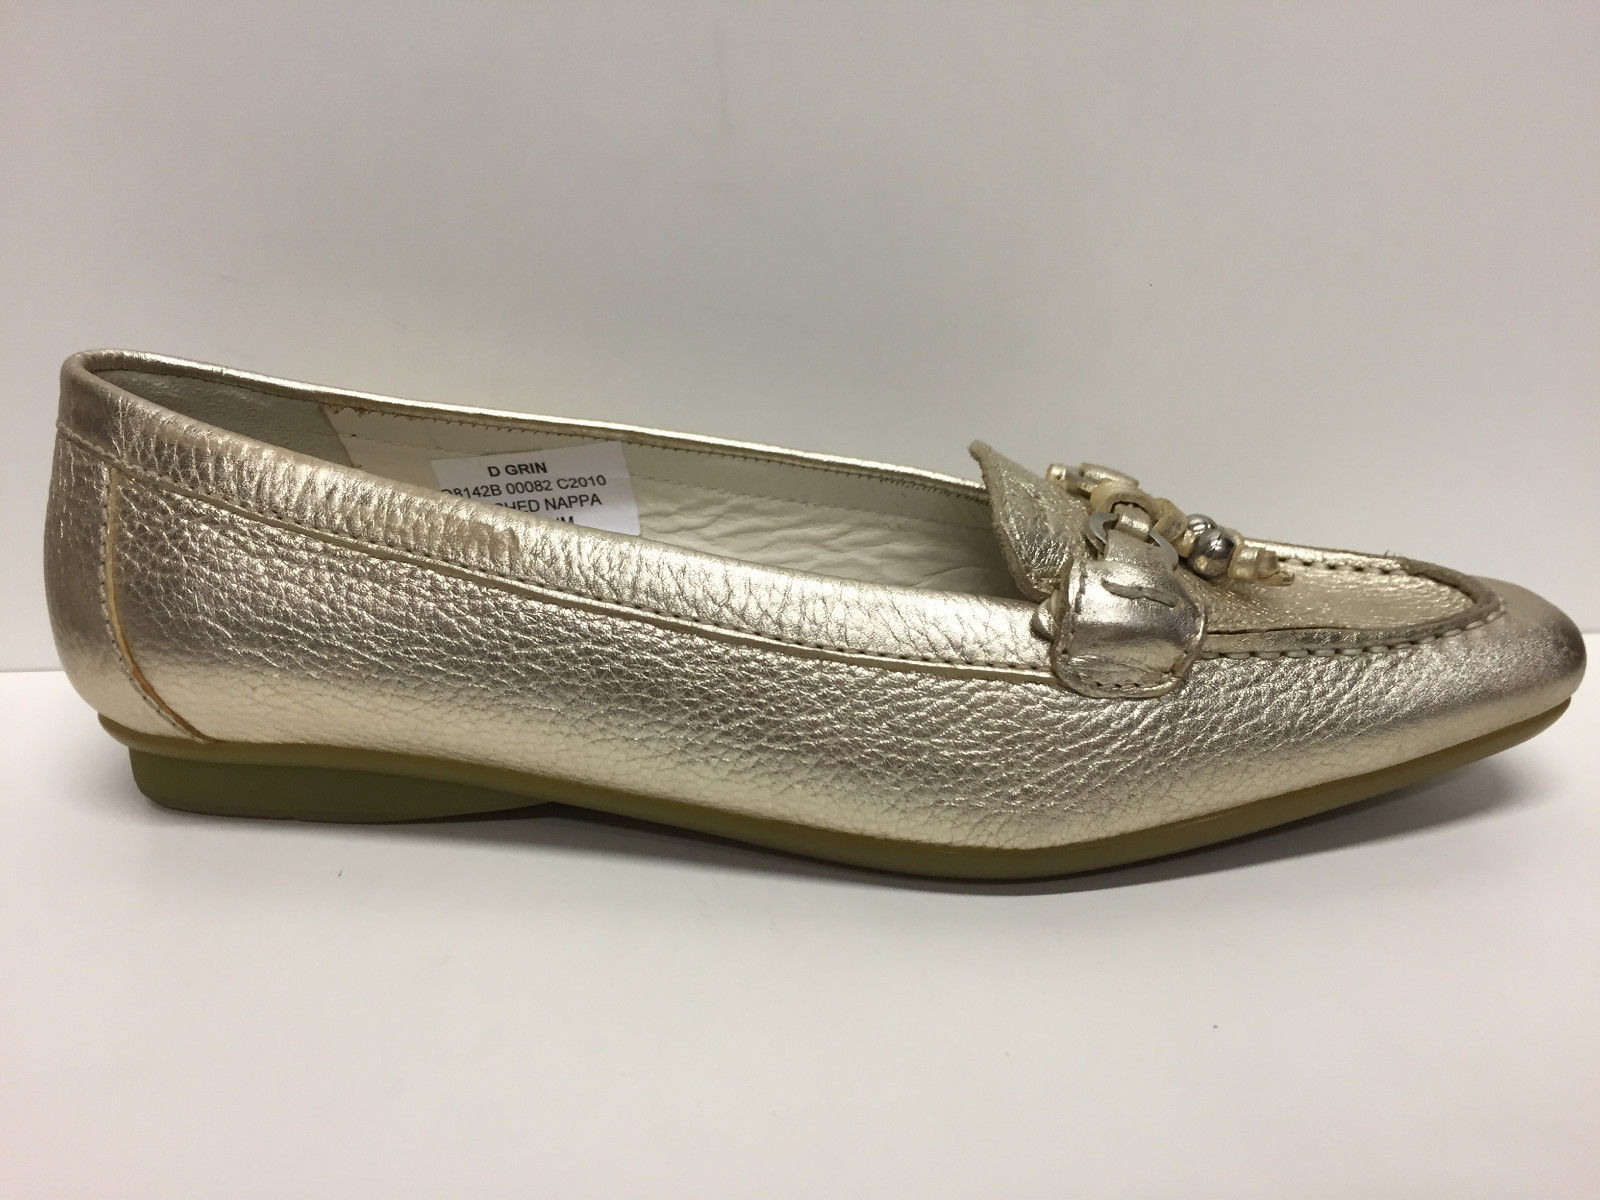 SCARPE MOCASSINO DONNA GEOX ORIGINALI GLAM D5310P ORO PELLE NAPPA SHOES LEATHER